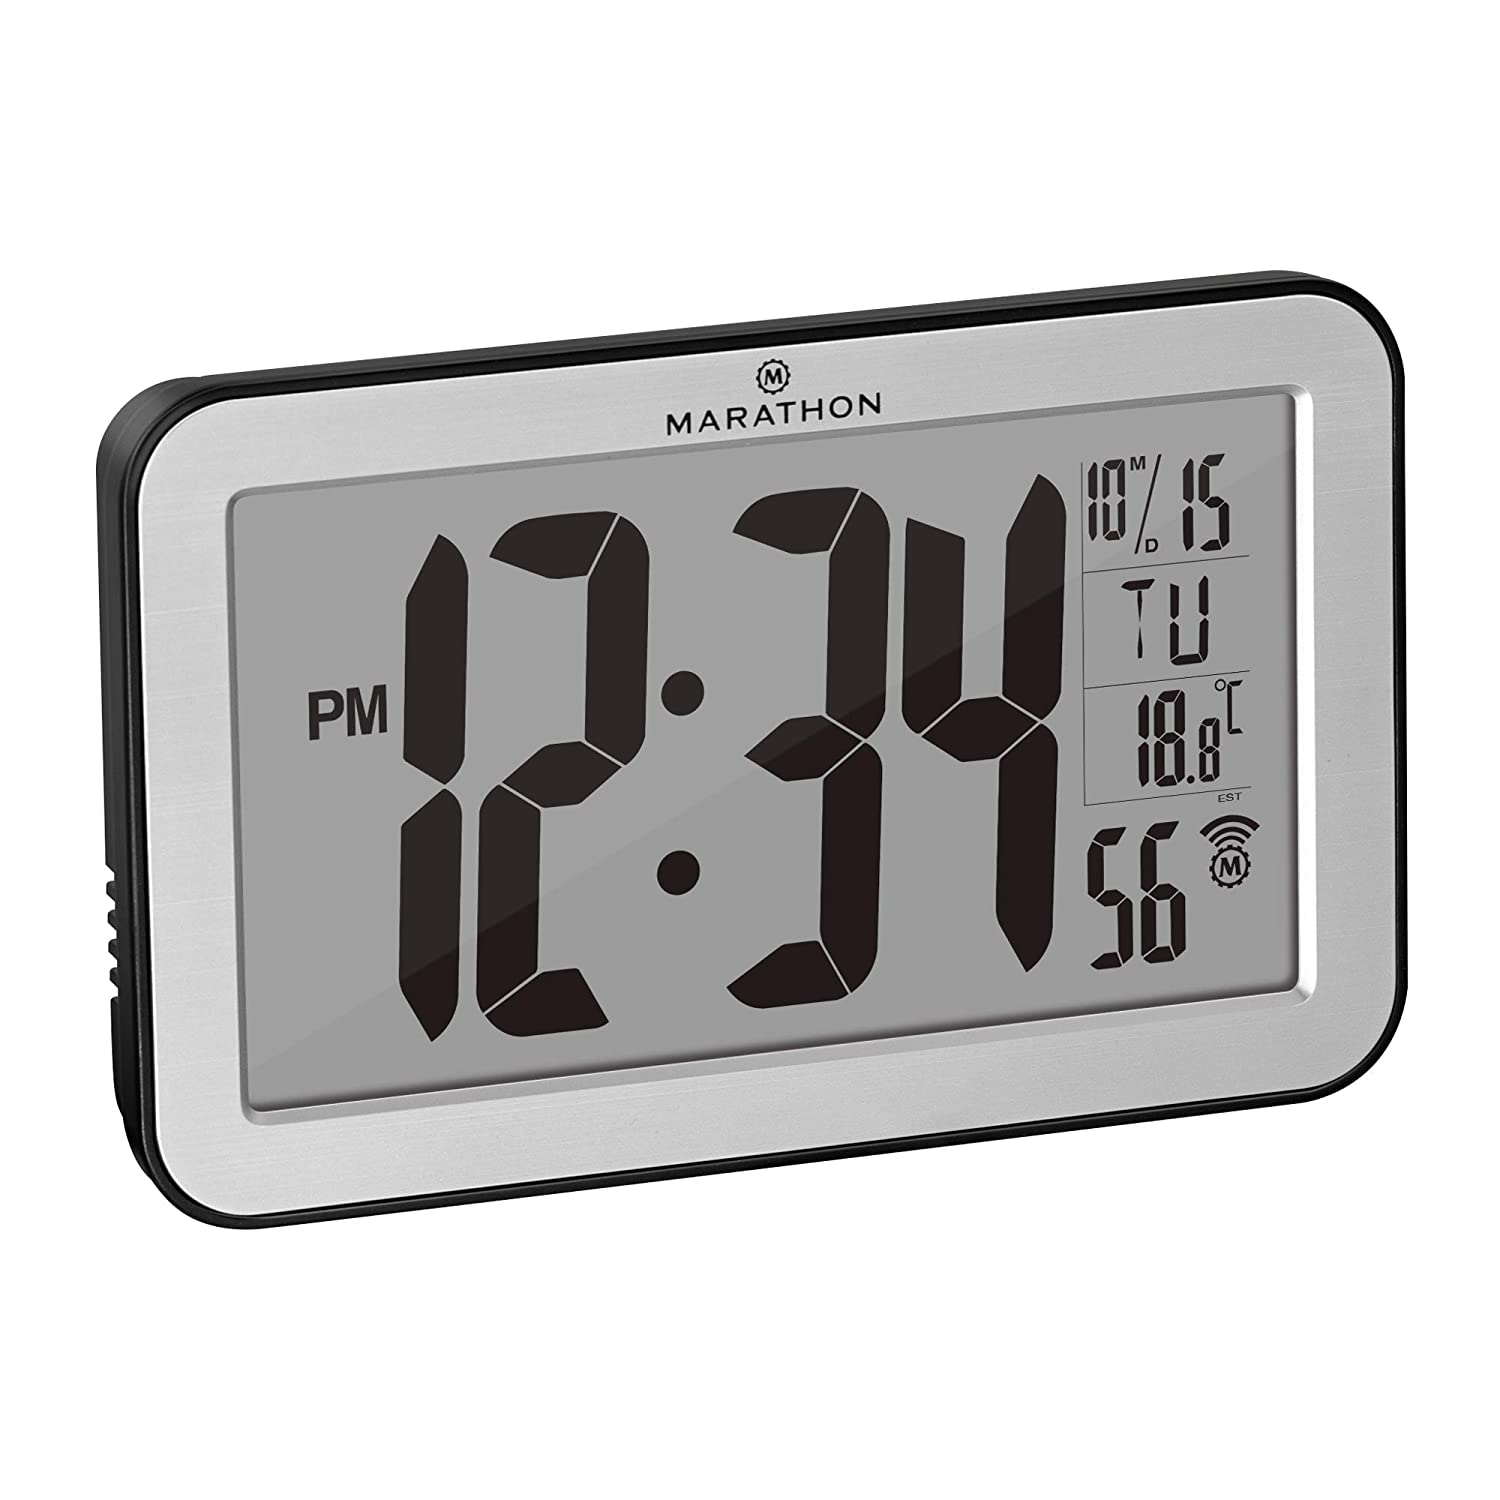 Marathon Commercial Grade Panoramic Atomic Wall Clock with Table Stand, Date, and Temperature